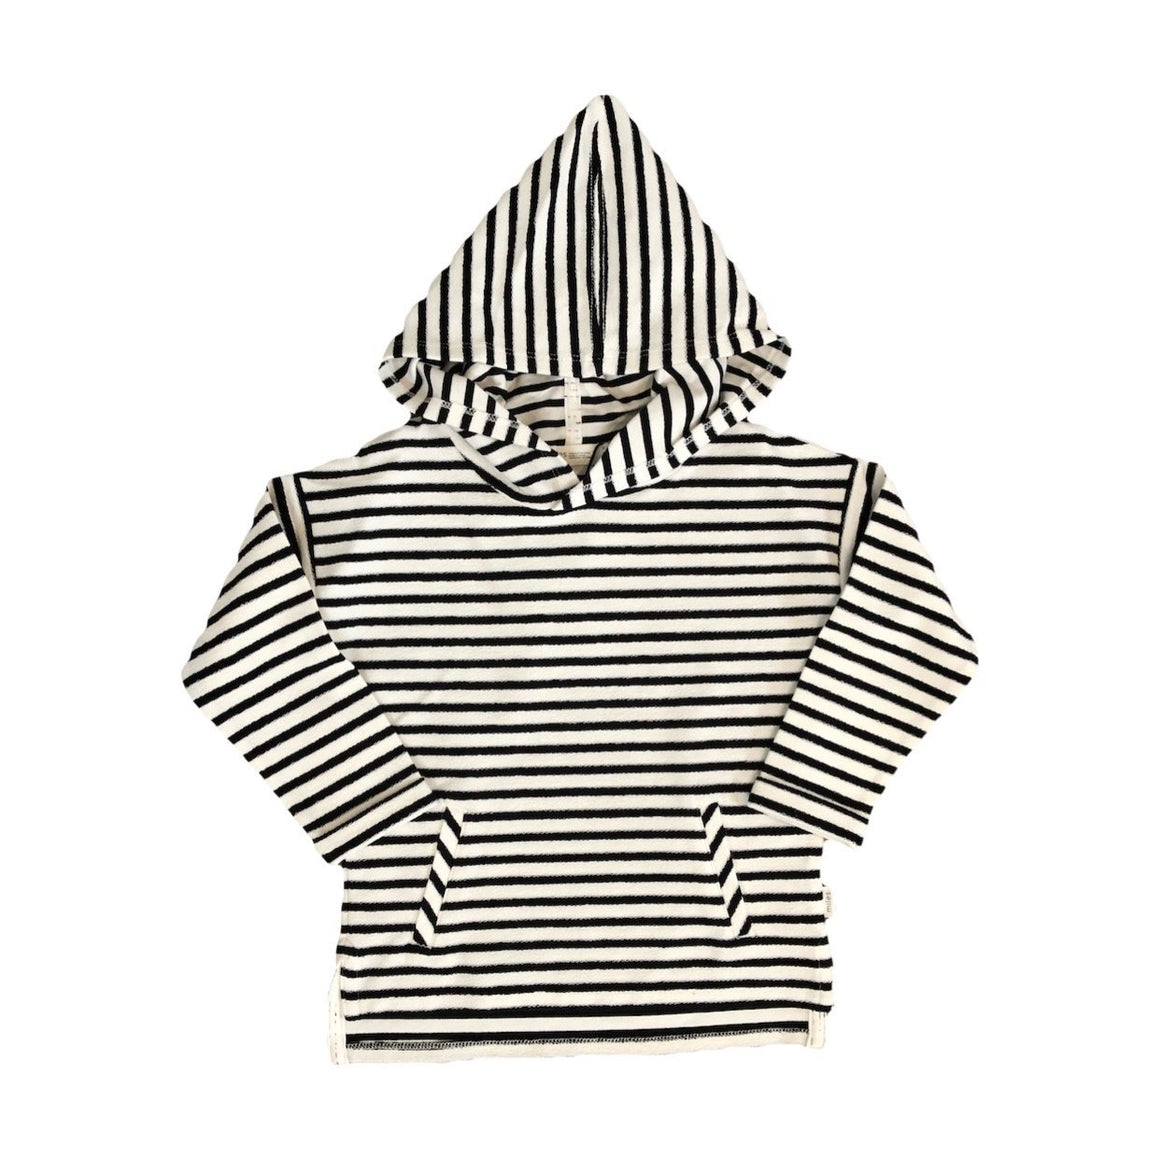 19FM40M670 MILES BABY - Boys Hooded Terry Sweatshirt - Black/White Stripe Long Sleeve Shirts Miles Baby